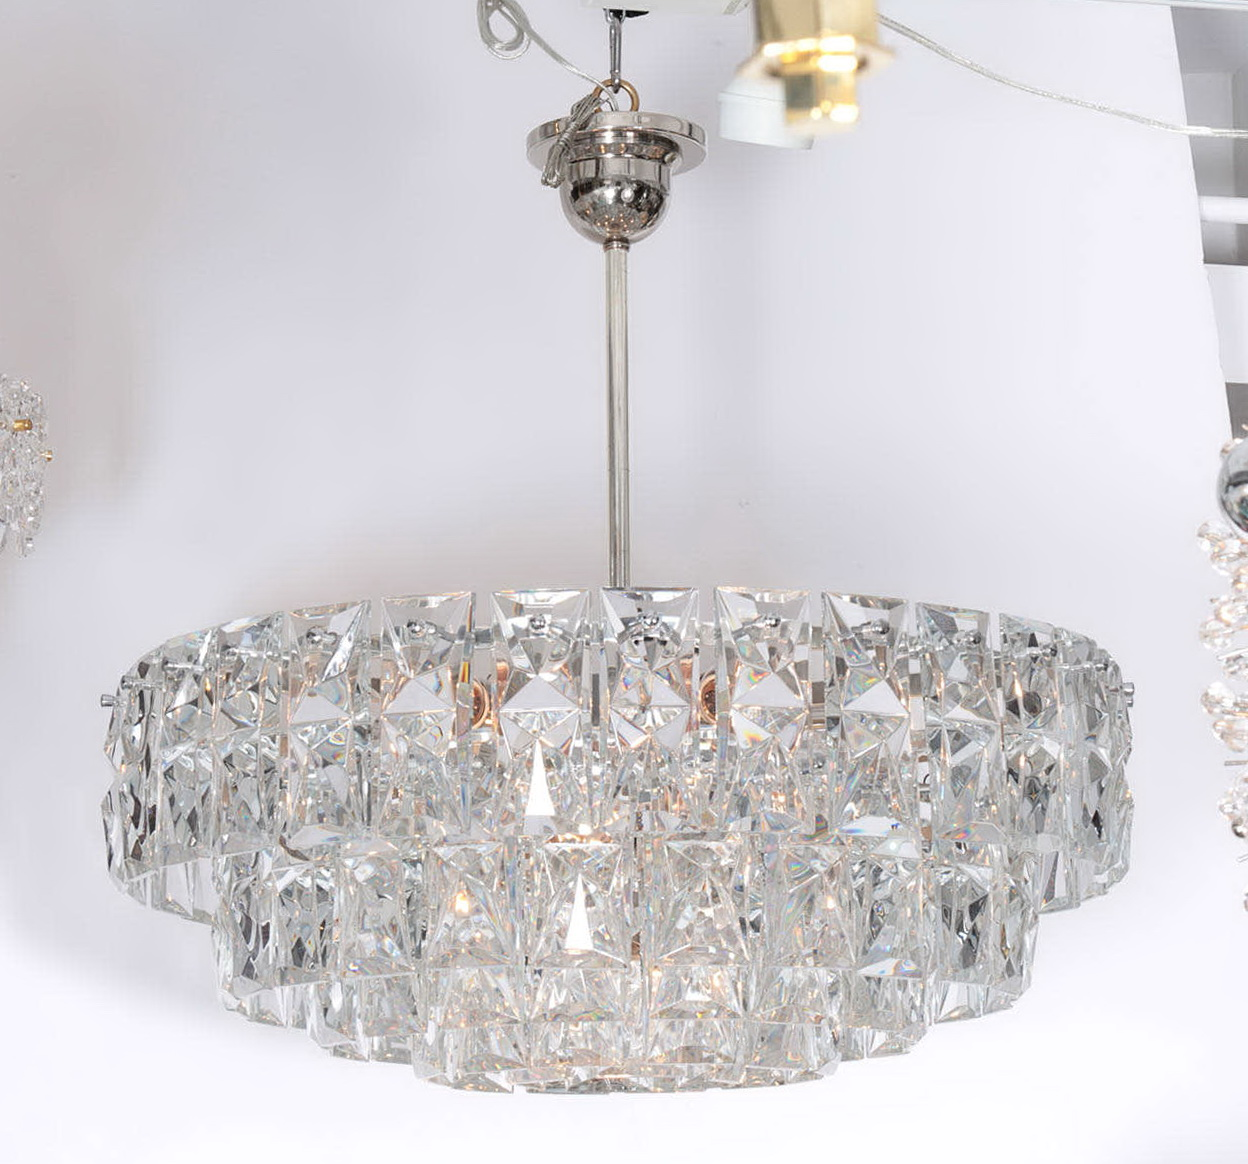 lucite prism chandelier furniture lighting vintage designer viyet